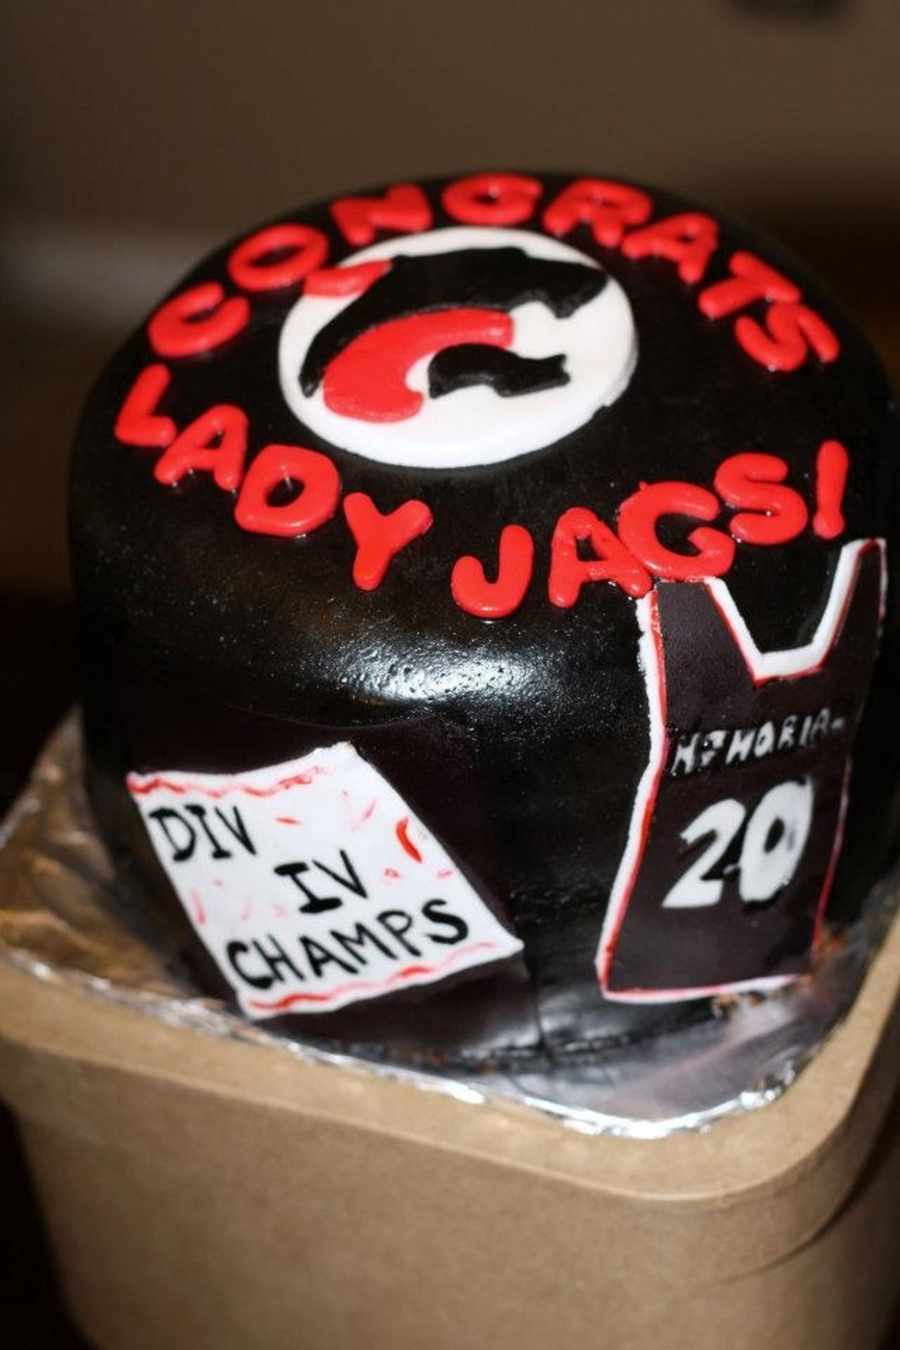 Lady Jags Division Champs on Cake Central